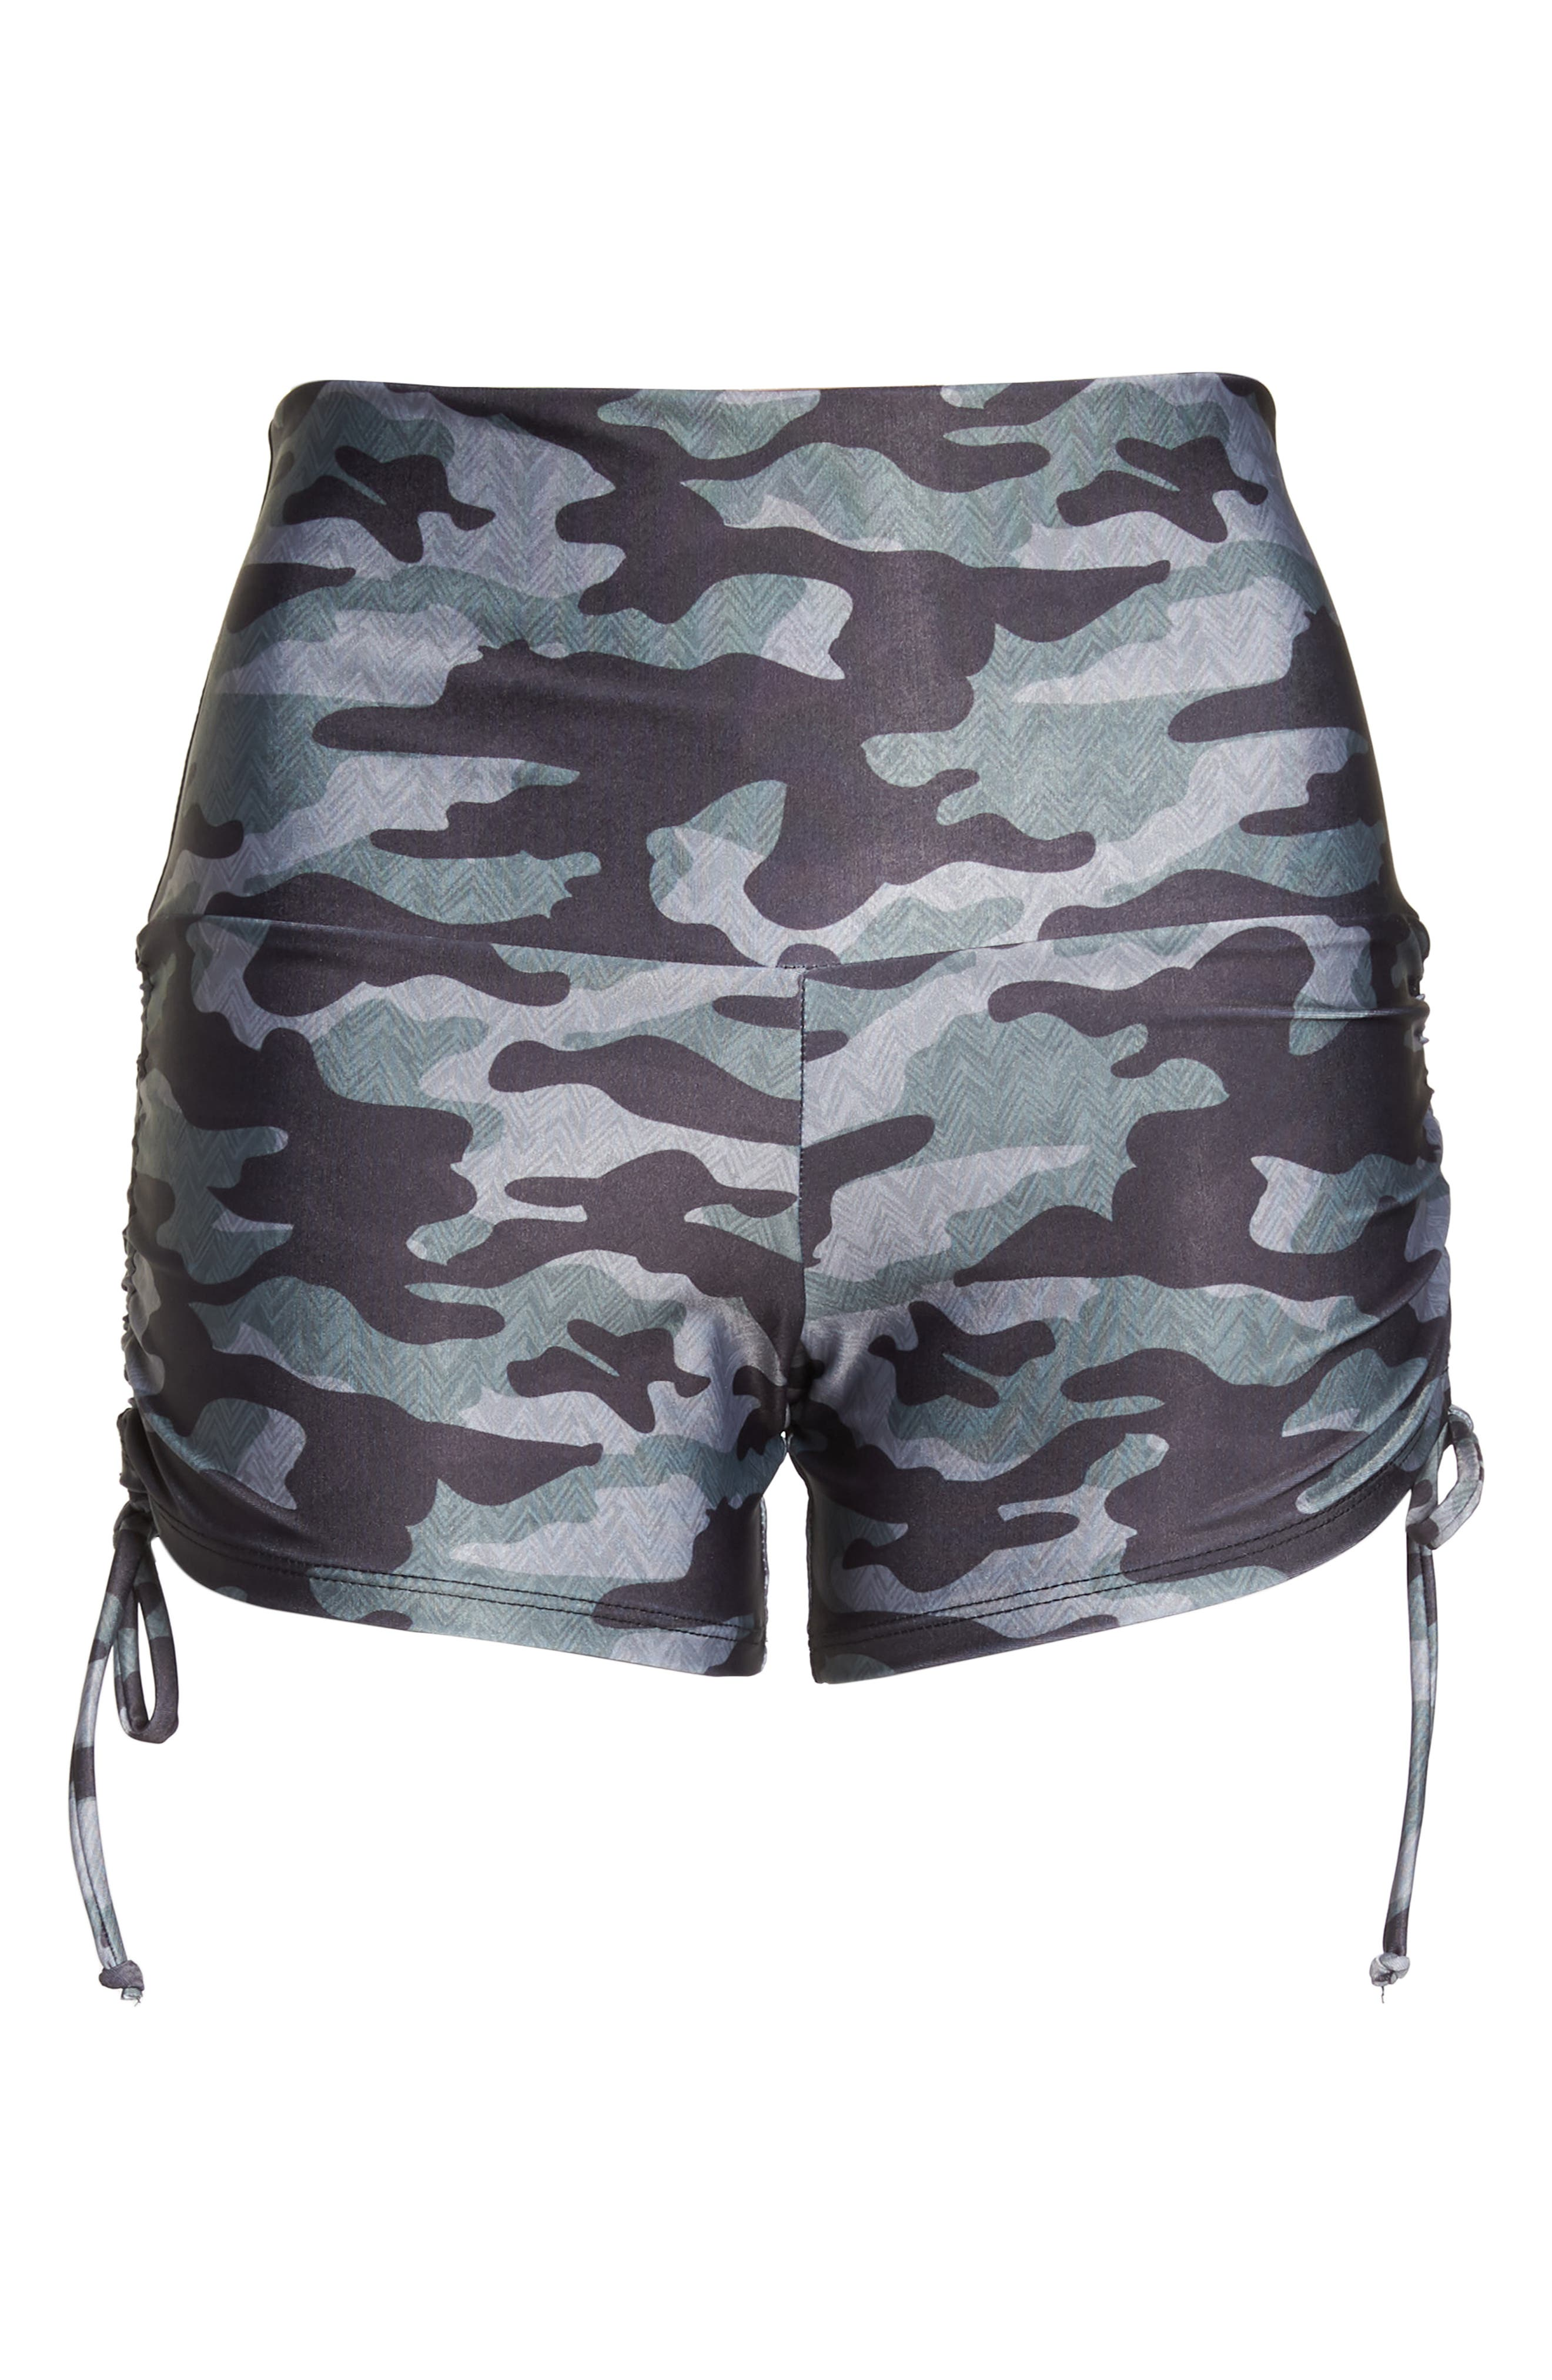 La Coqueta Swim Bottoms,                             Alternate thumbnail 7, color,                             Distressed Camo